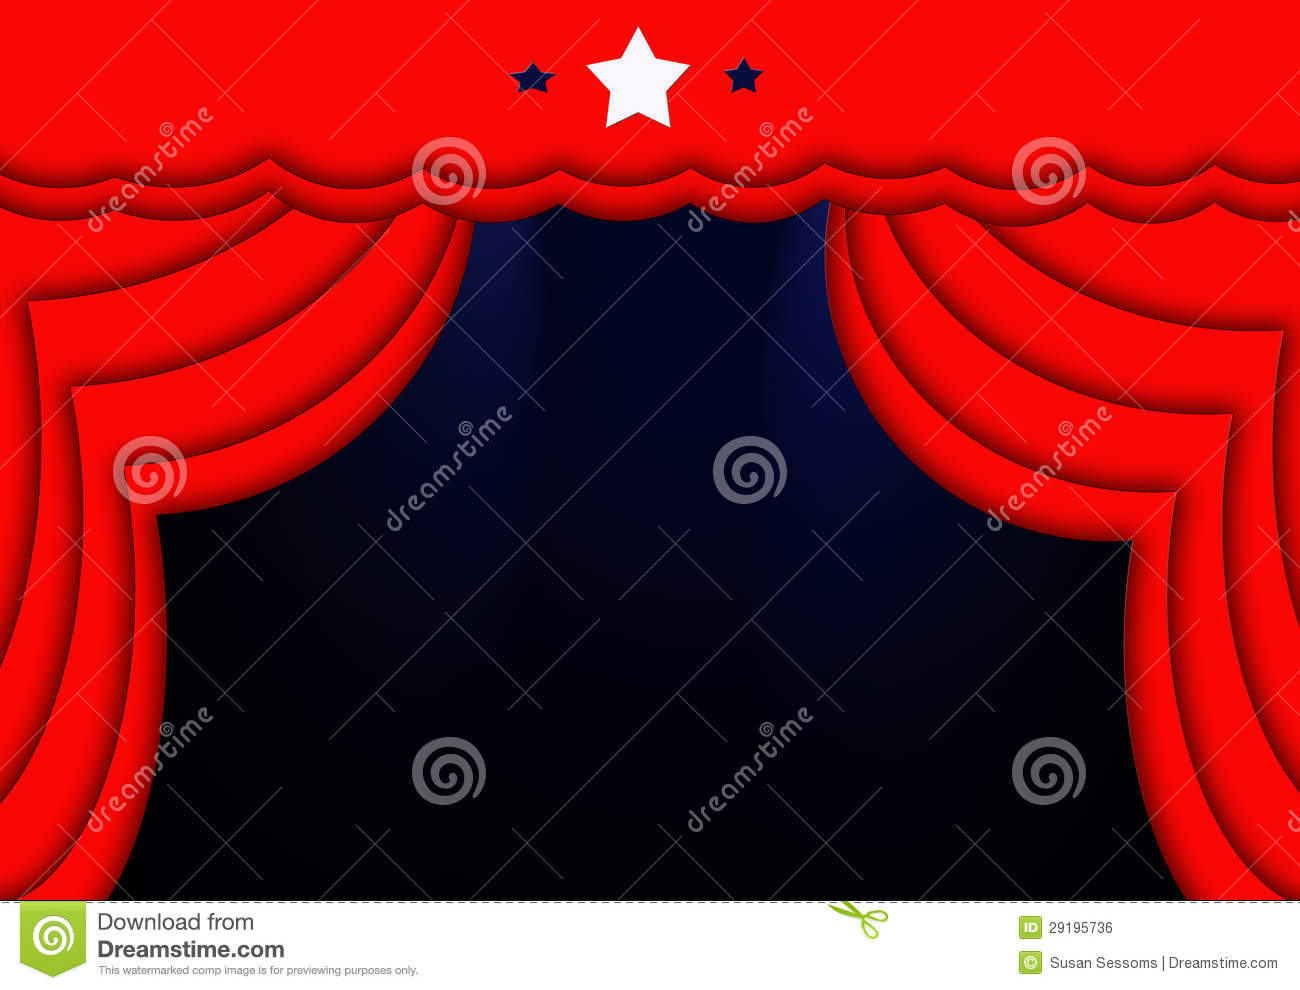 Red stage curtain with lights - Red Curtains Blue Lights Stars Stage Background